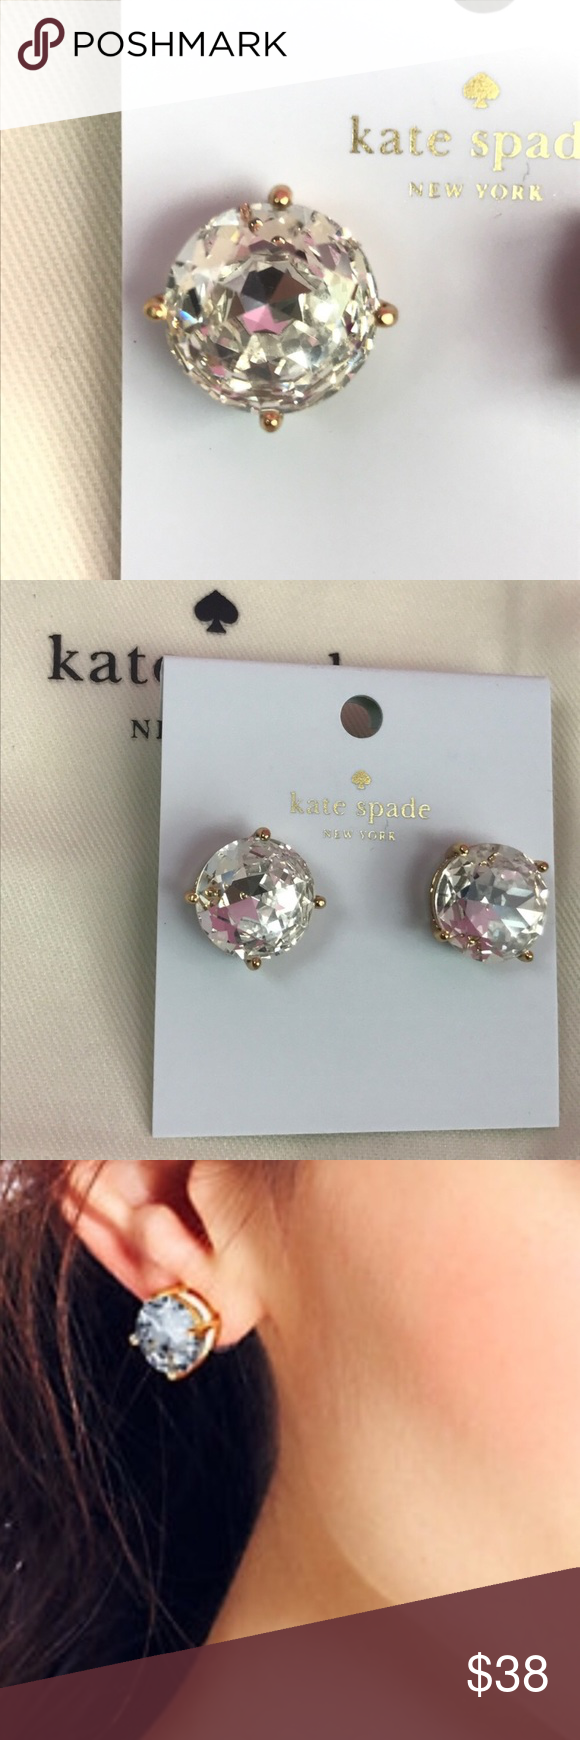 """NWT Kate Spade Large Gum Drop Clear Stud Earrings NWT Kate Spade Large Gum Drop Clear Stud Earrings Retail $38 style# O0RU0736  About .5"""" in diameter ; Sorry No Trades; Comes with Dust Bag kate spade Jewelry Earrings"""